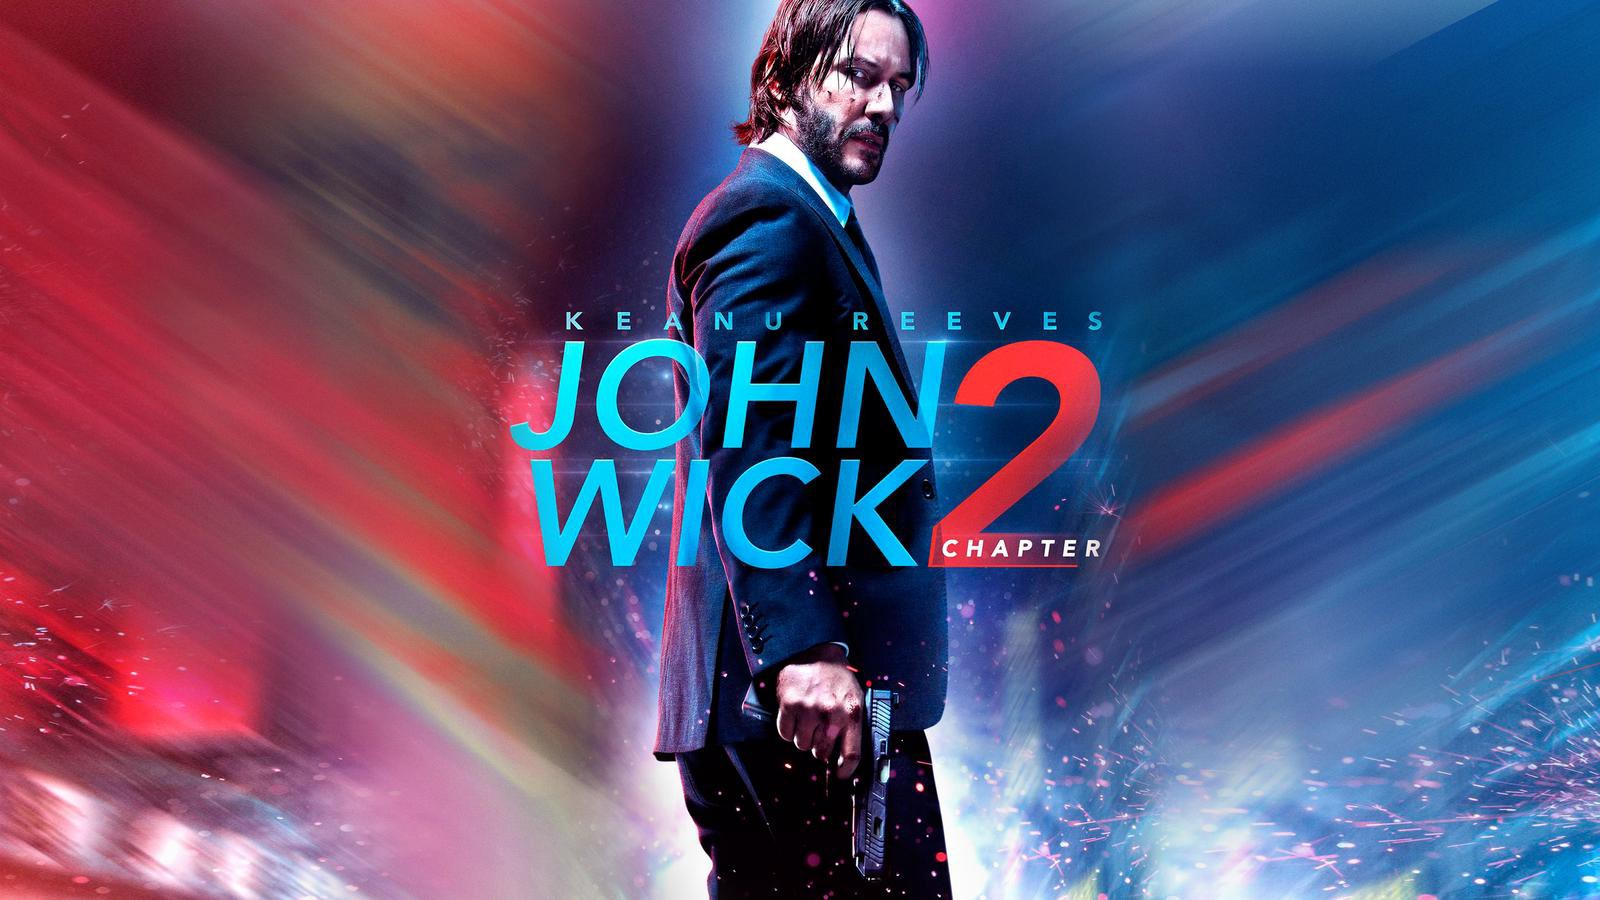 john wick 2 full movie free online hd